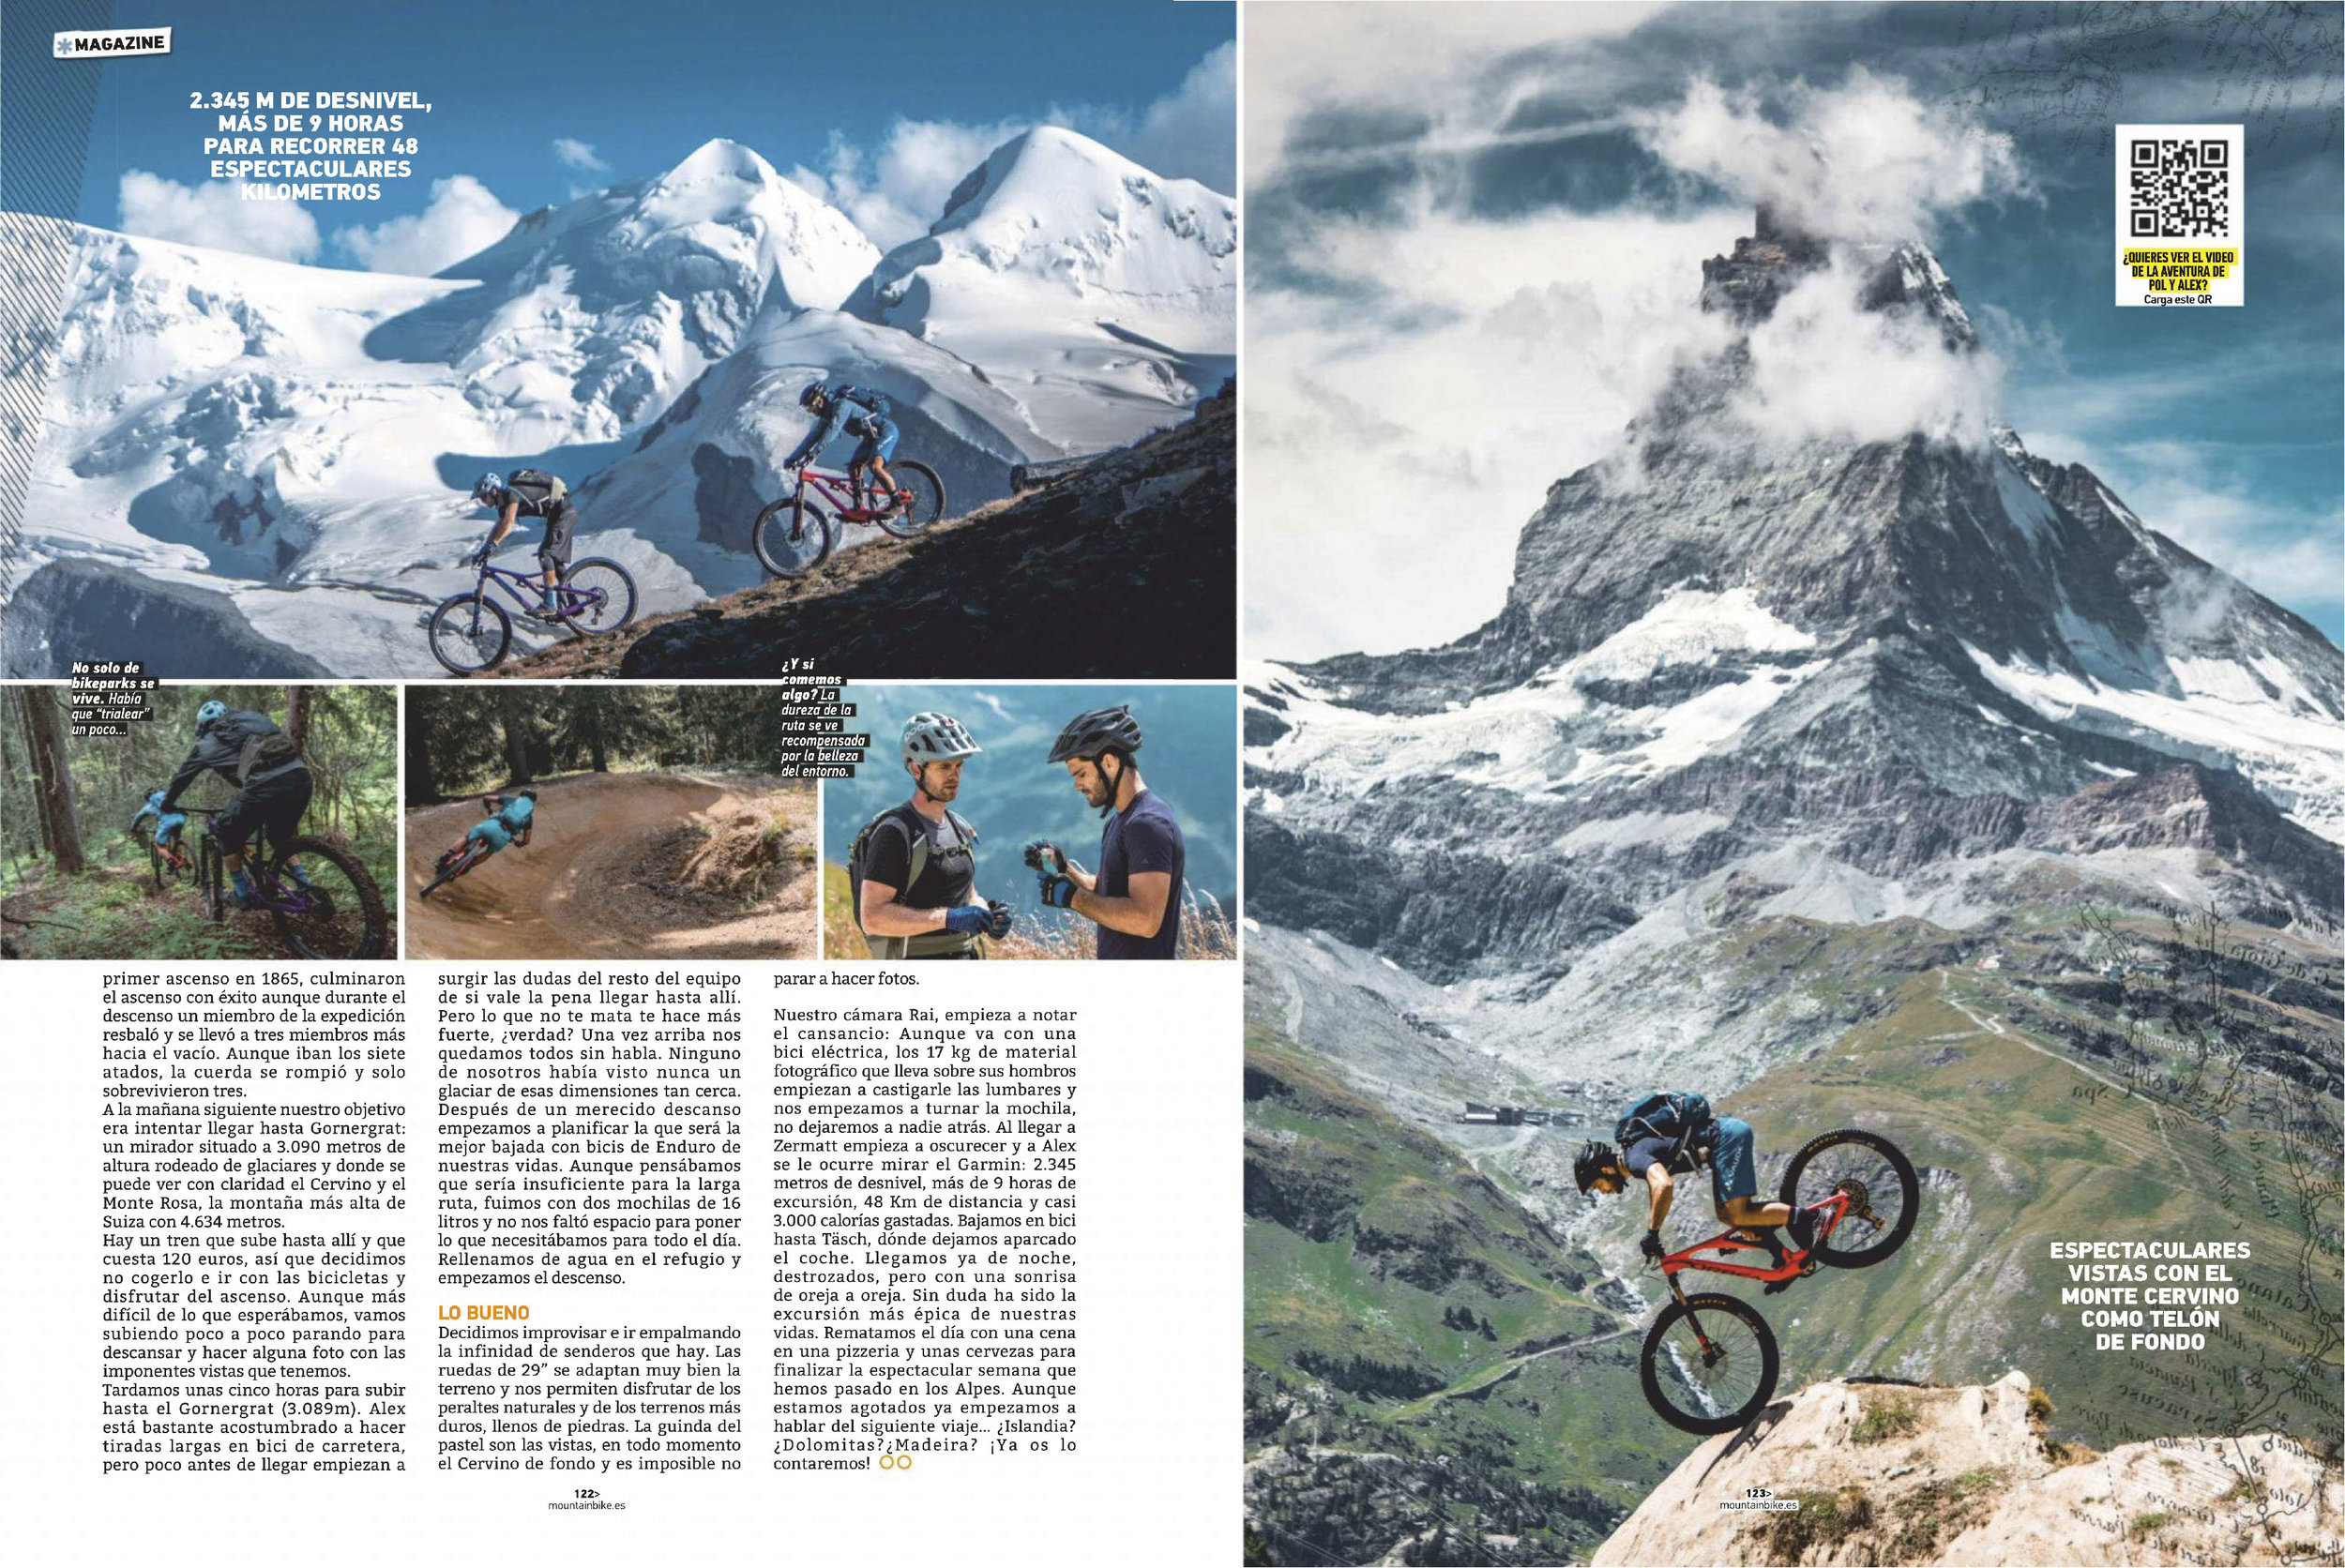 pol_tarres_projects_alps_2018_revista_bike_4.jpg